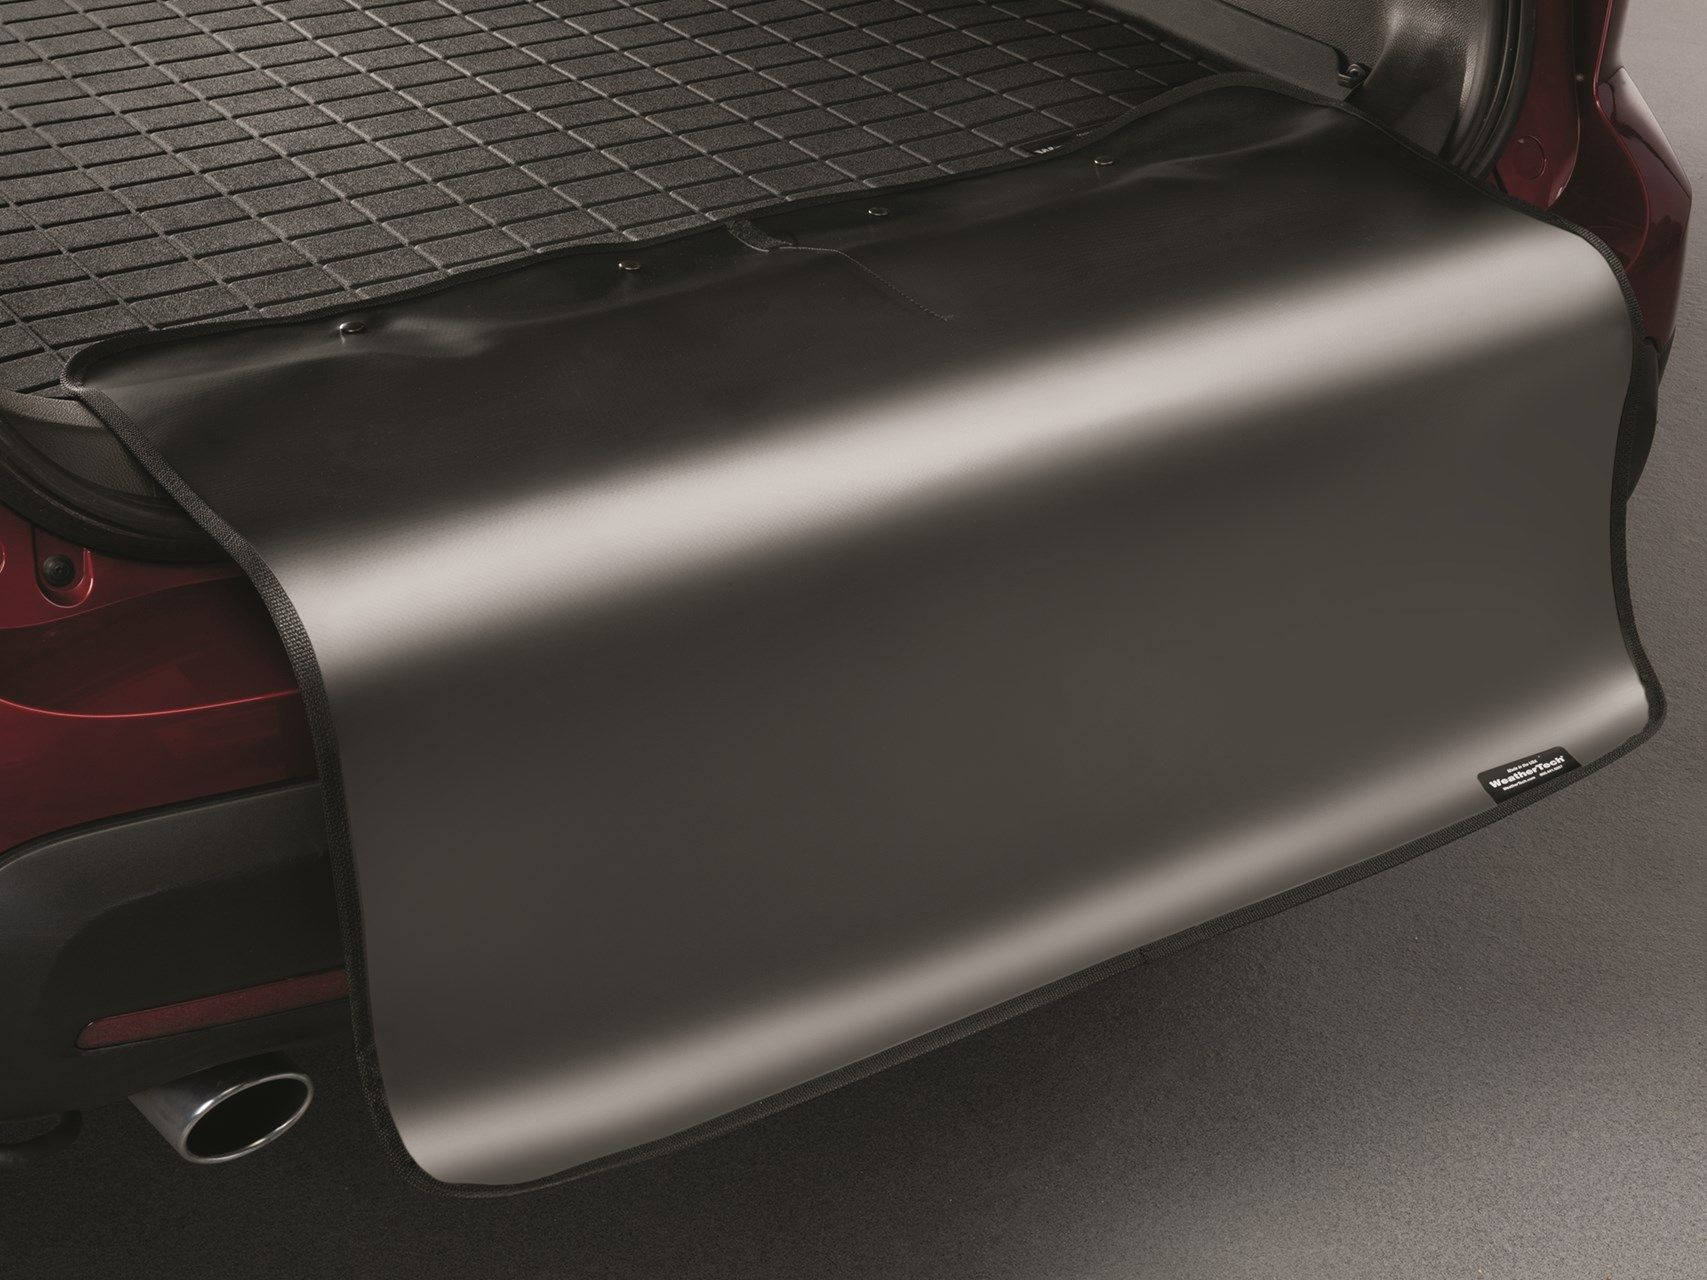 Weathertech mats part source - The Weathertech Bumper Protector Is A Great Addition To Your Cargo Liner To Help Protect